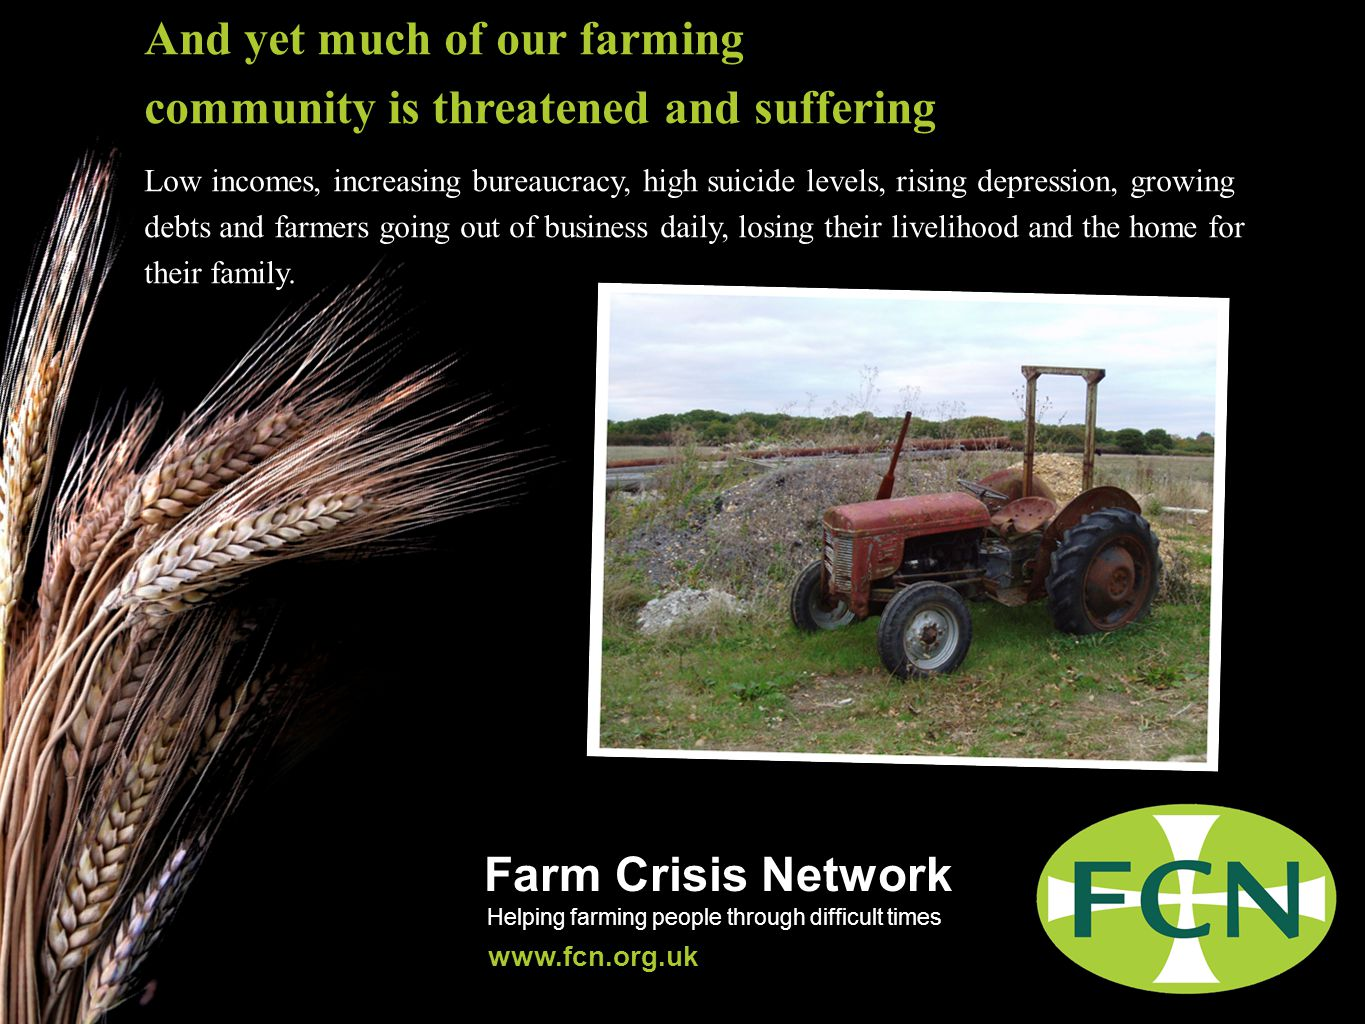 Farm Crisis Network Helping farming people through difficult times www.fcn.org.uk And yet much of our farming community is threatened and suffering Low incomes, increasing bureaucracy, high suicide levels, rising depression, growing debts and farmers going out of business daily, losing their livelihood and the home for their family.